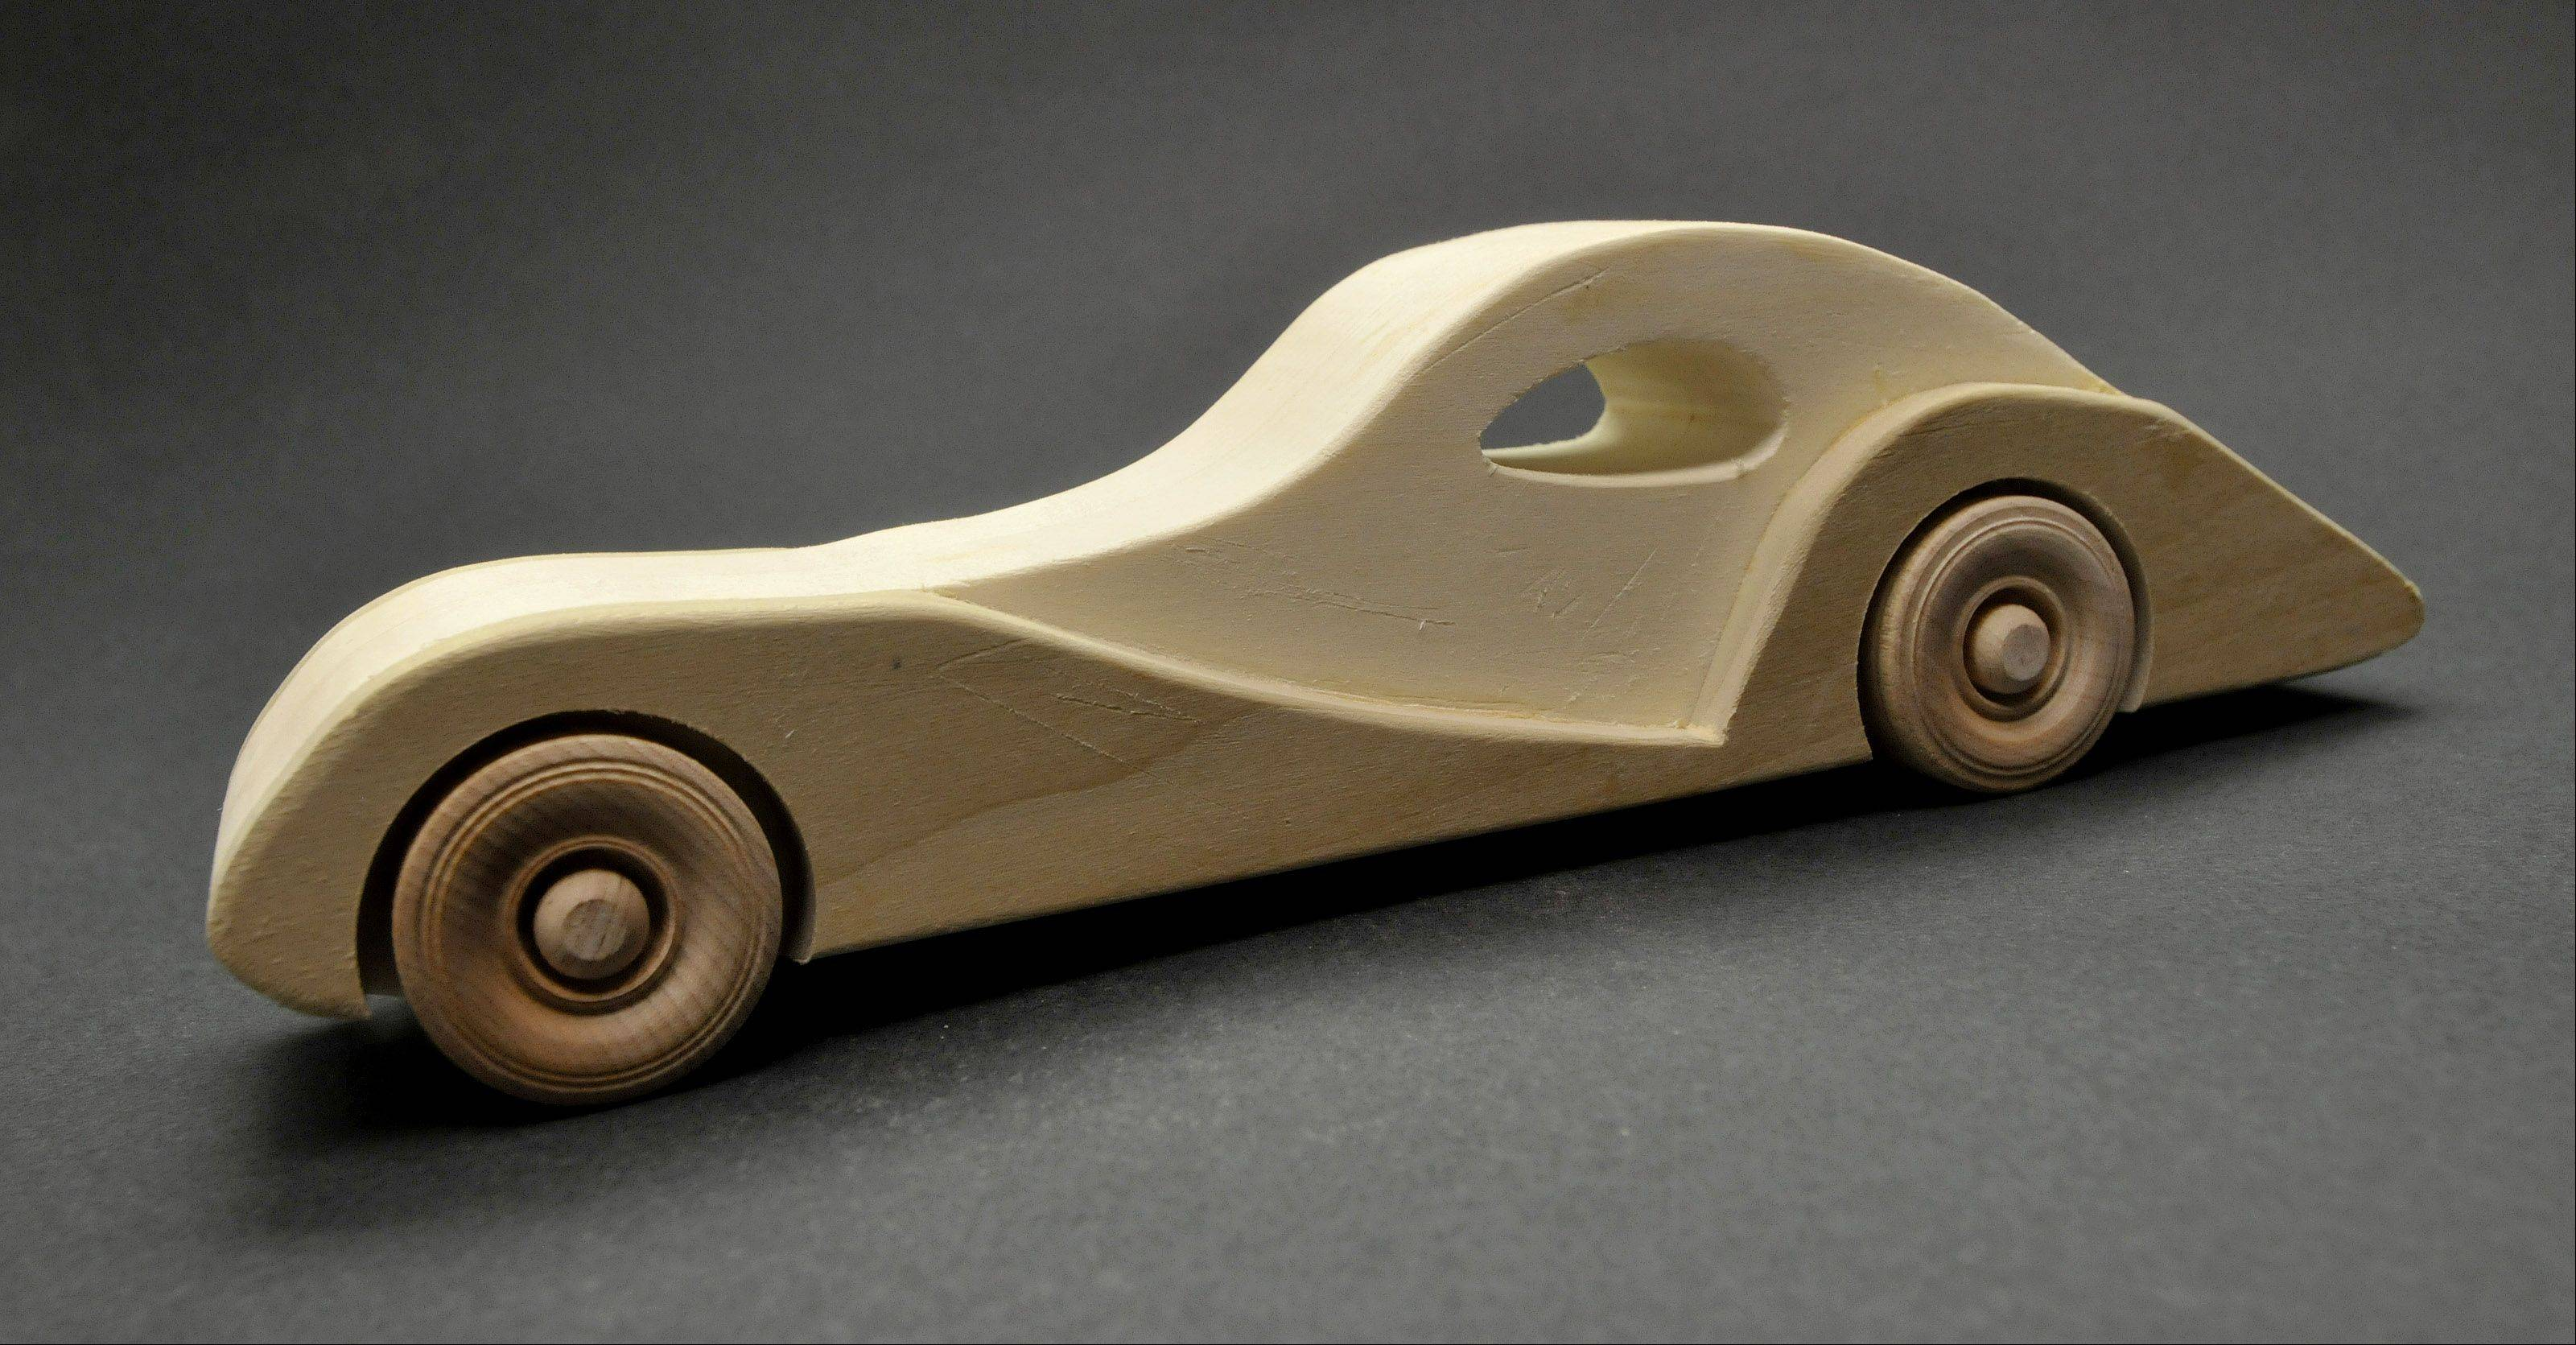 A model Bugatti sports car features a sleek design. The cars and trucks are especially popular among boys.